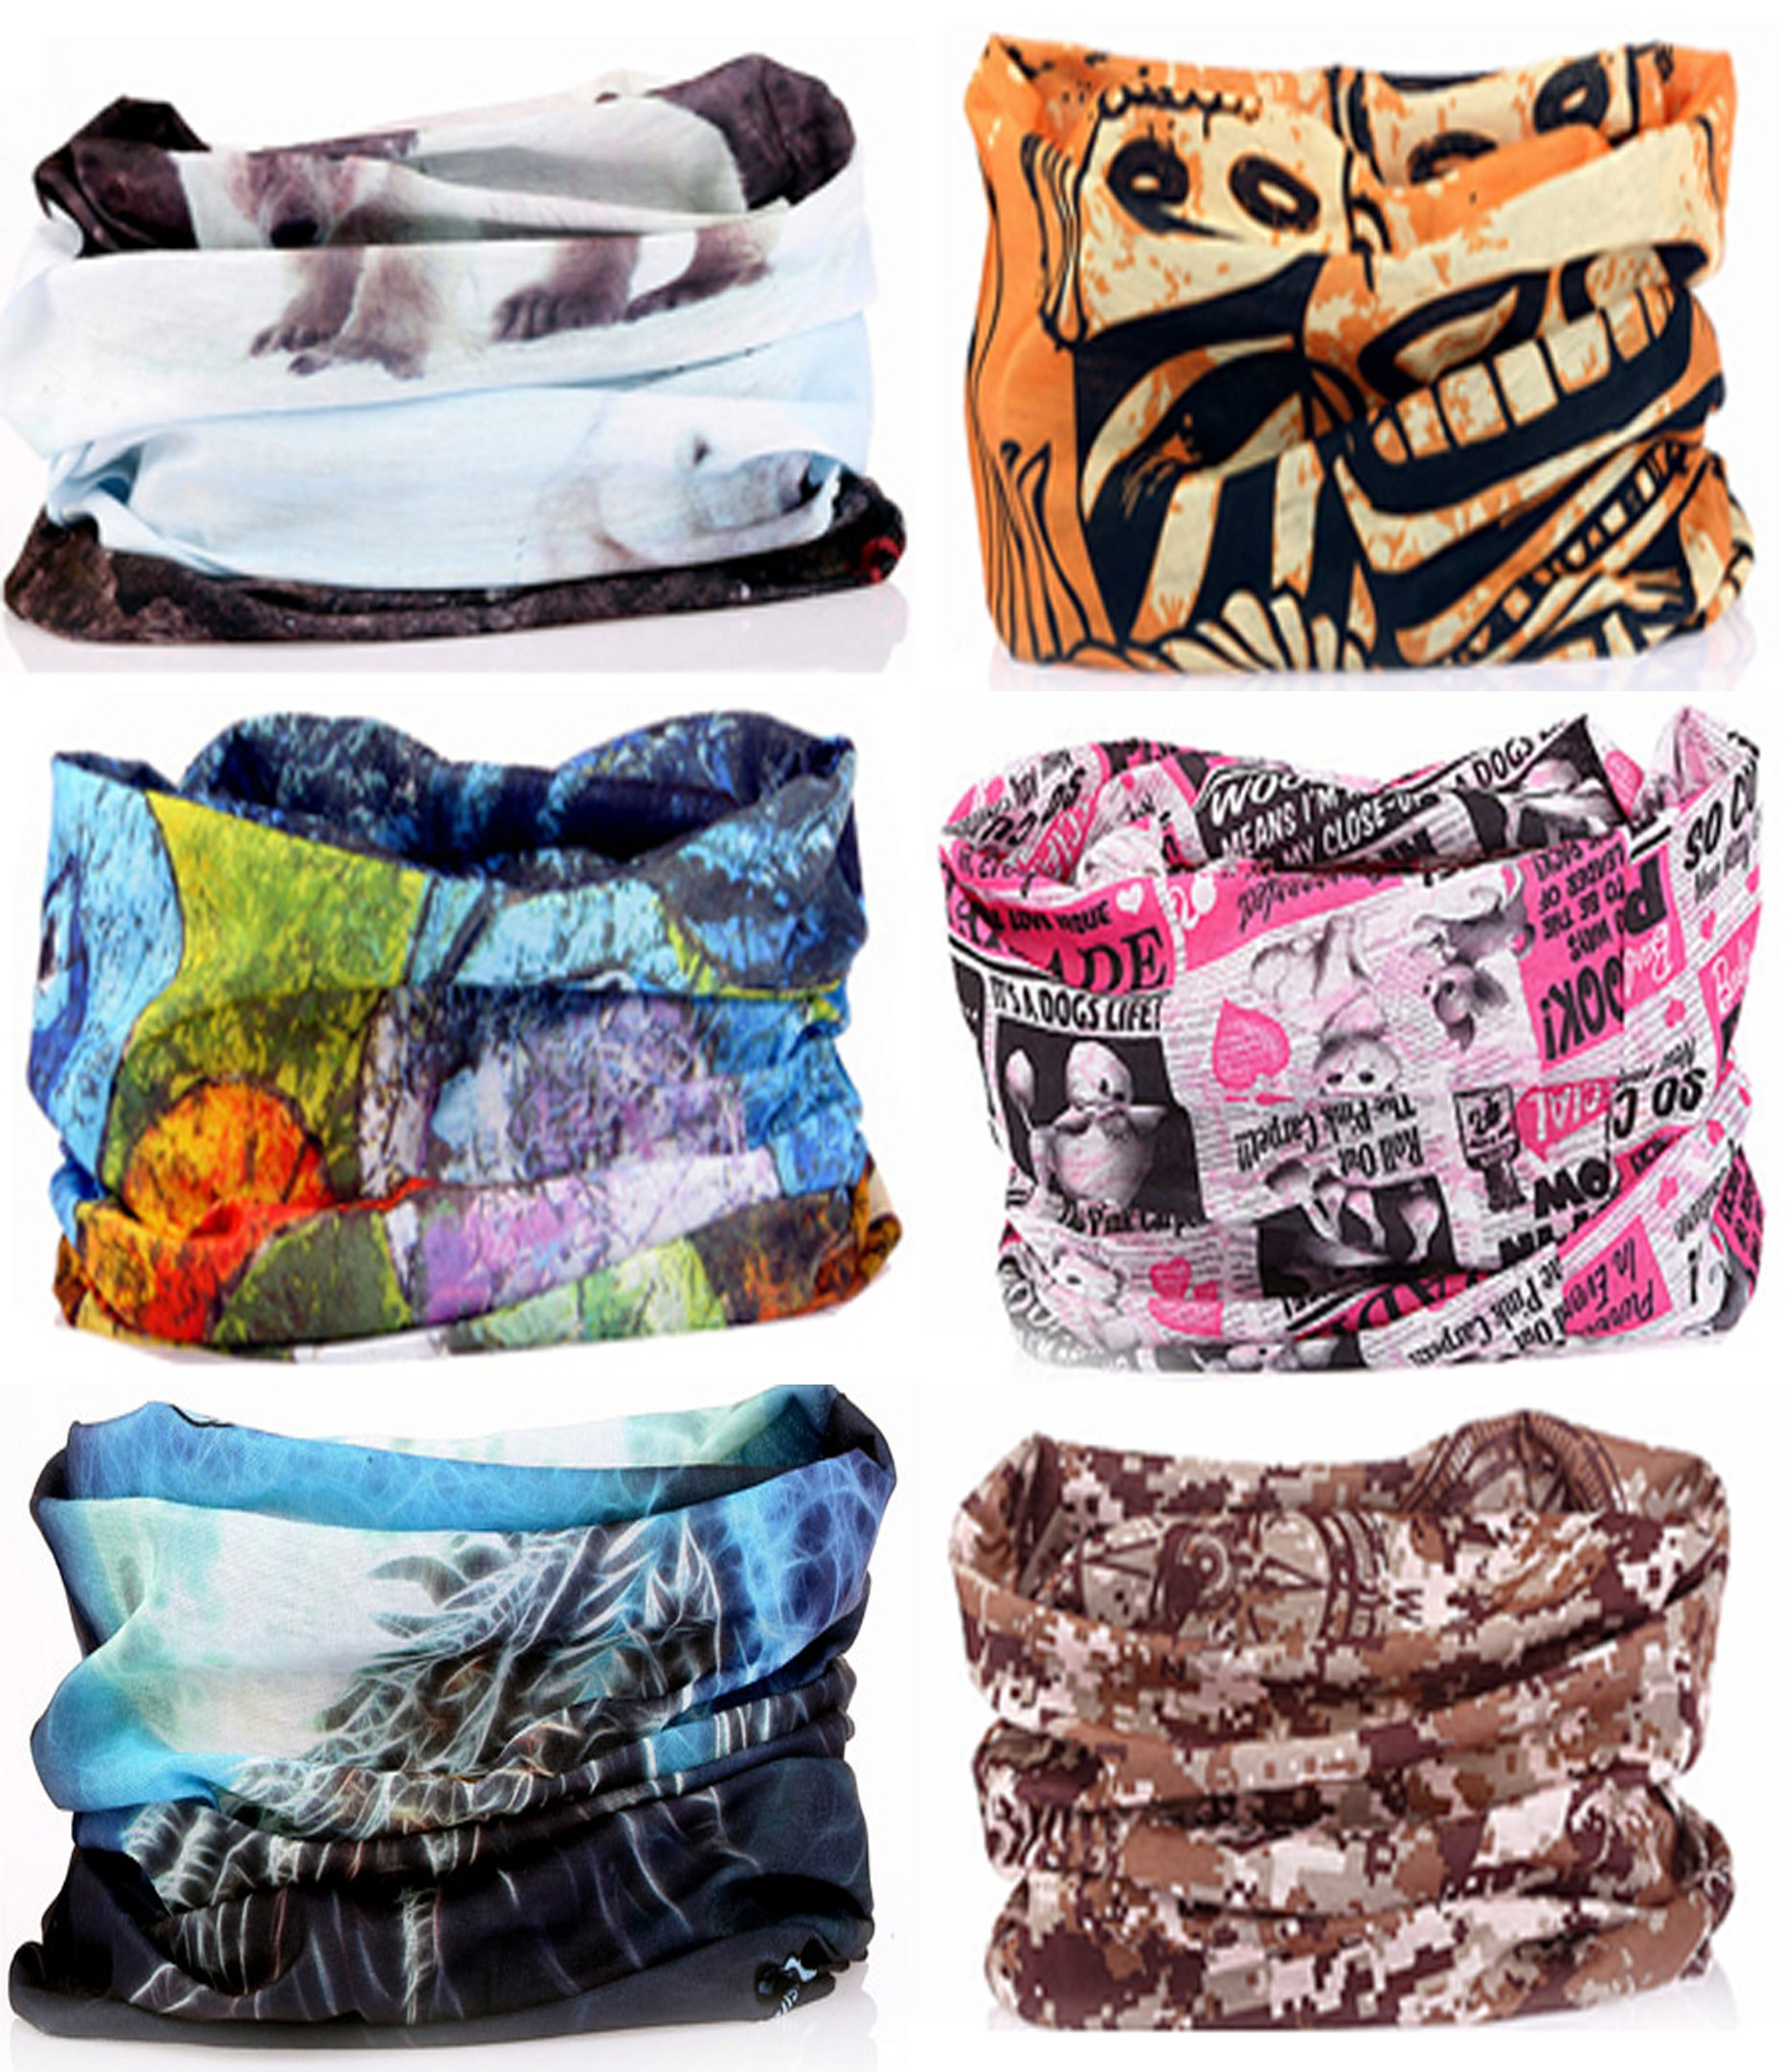 SmilerSmile 6pcs Assorted Seamless Outdoor Sport Bandanna Headwrap Scarf Wrap, 12 in 1 High Elastic Magic Headband & Collars Muffler Scarf Face Mask with UV Resistance,(Style 12)